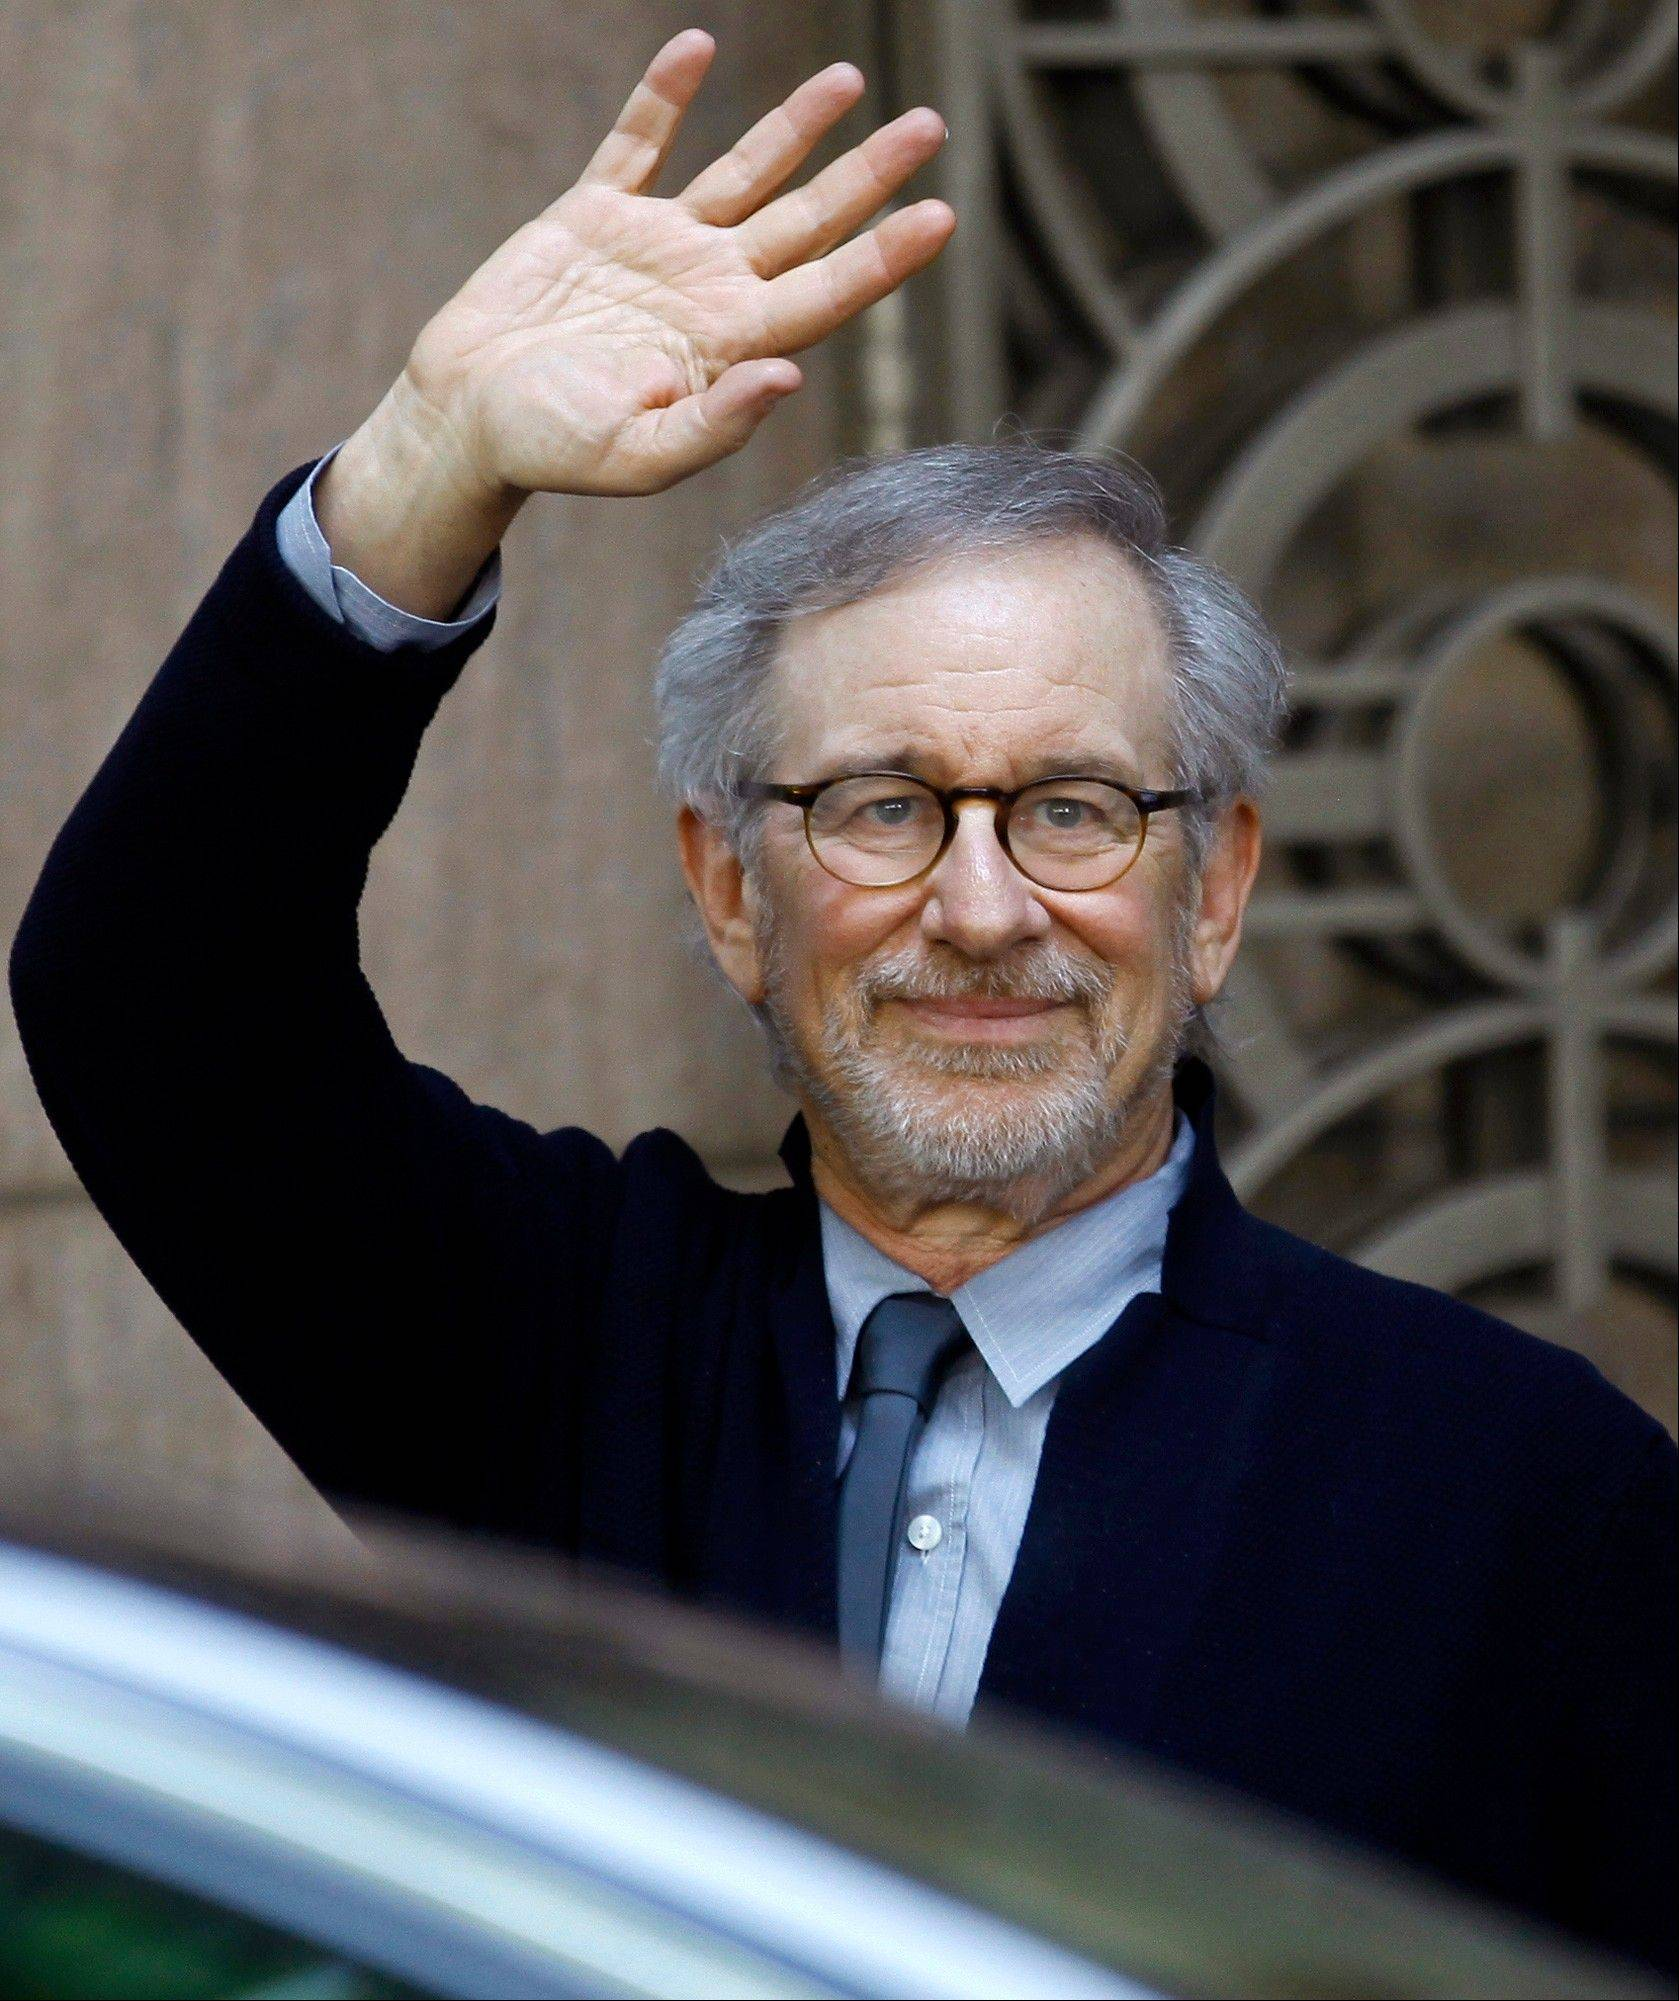 Director Steven Spielberg waves to the media as he leaves Indian Industrialist Anil Ambani's office in Mumbai, India.